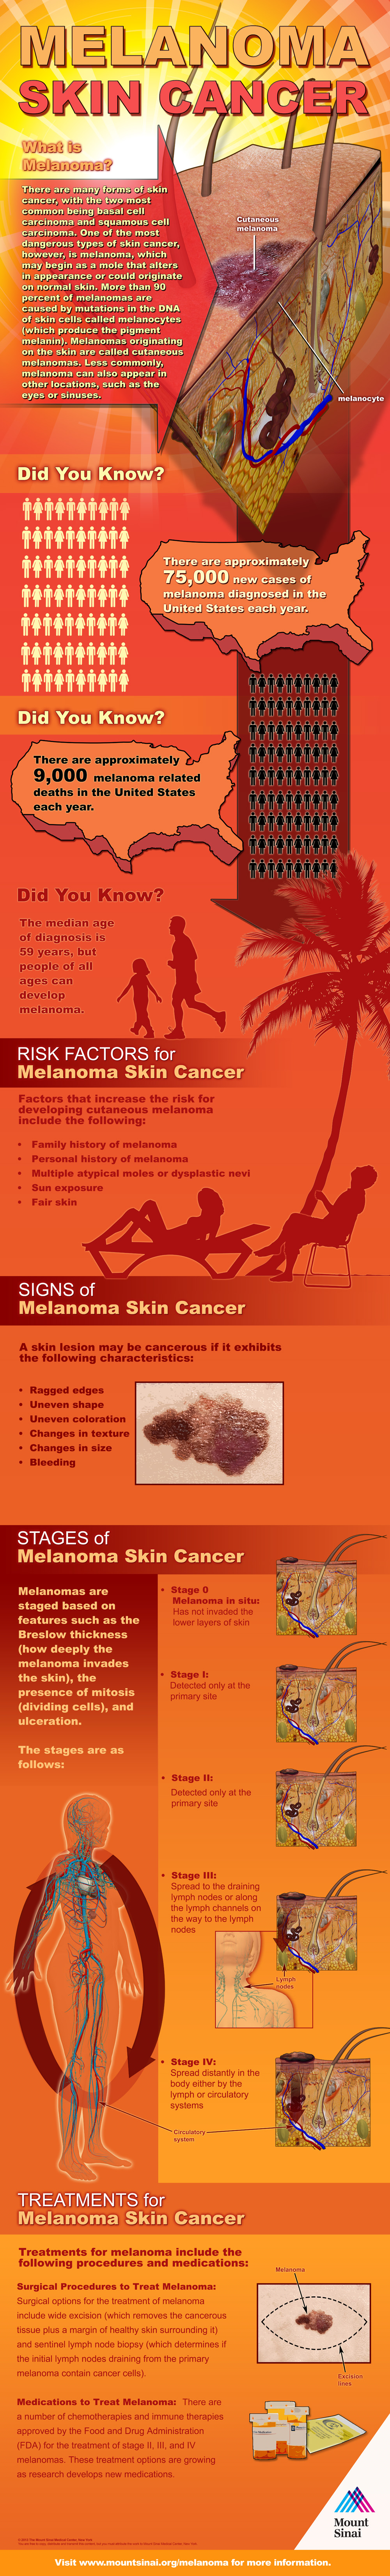 Melanoma Infographic #melanoma #cancerawareness #cancer #may #ohmrstucker